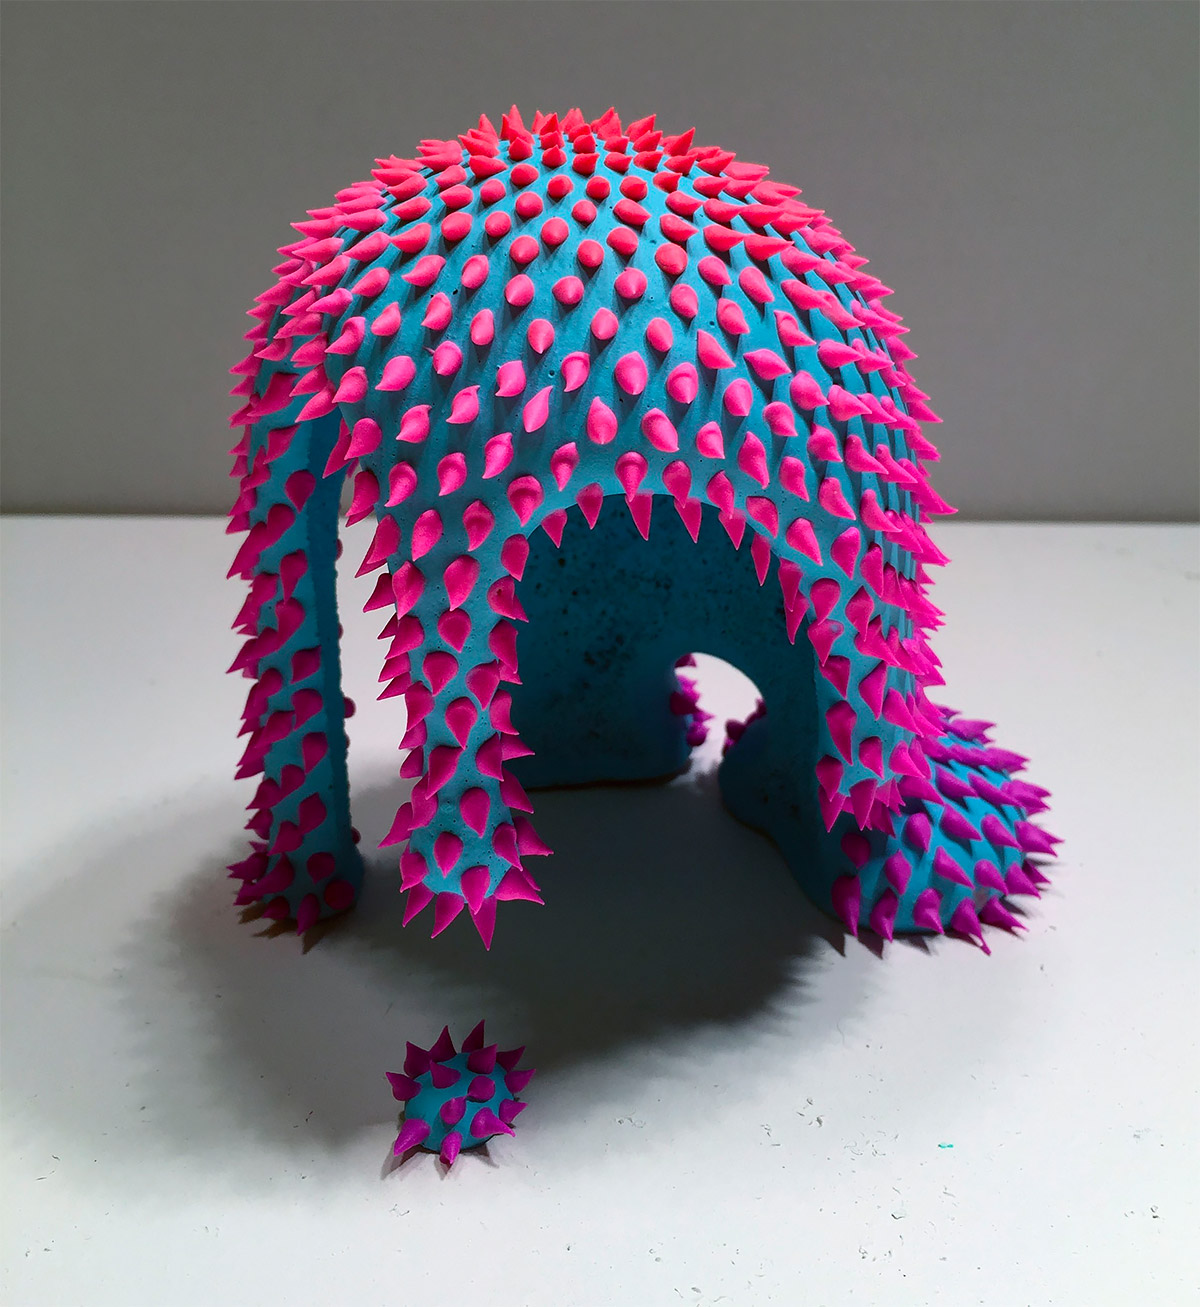 Squishes, Drips & Blobs: Bizarre Sculptures by Dan Lam (12 pics)